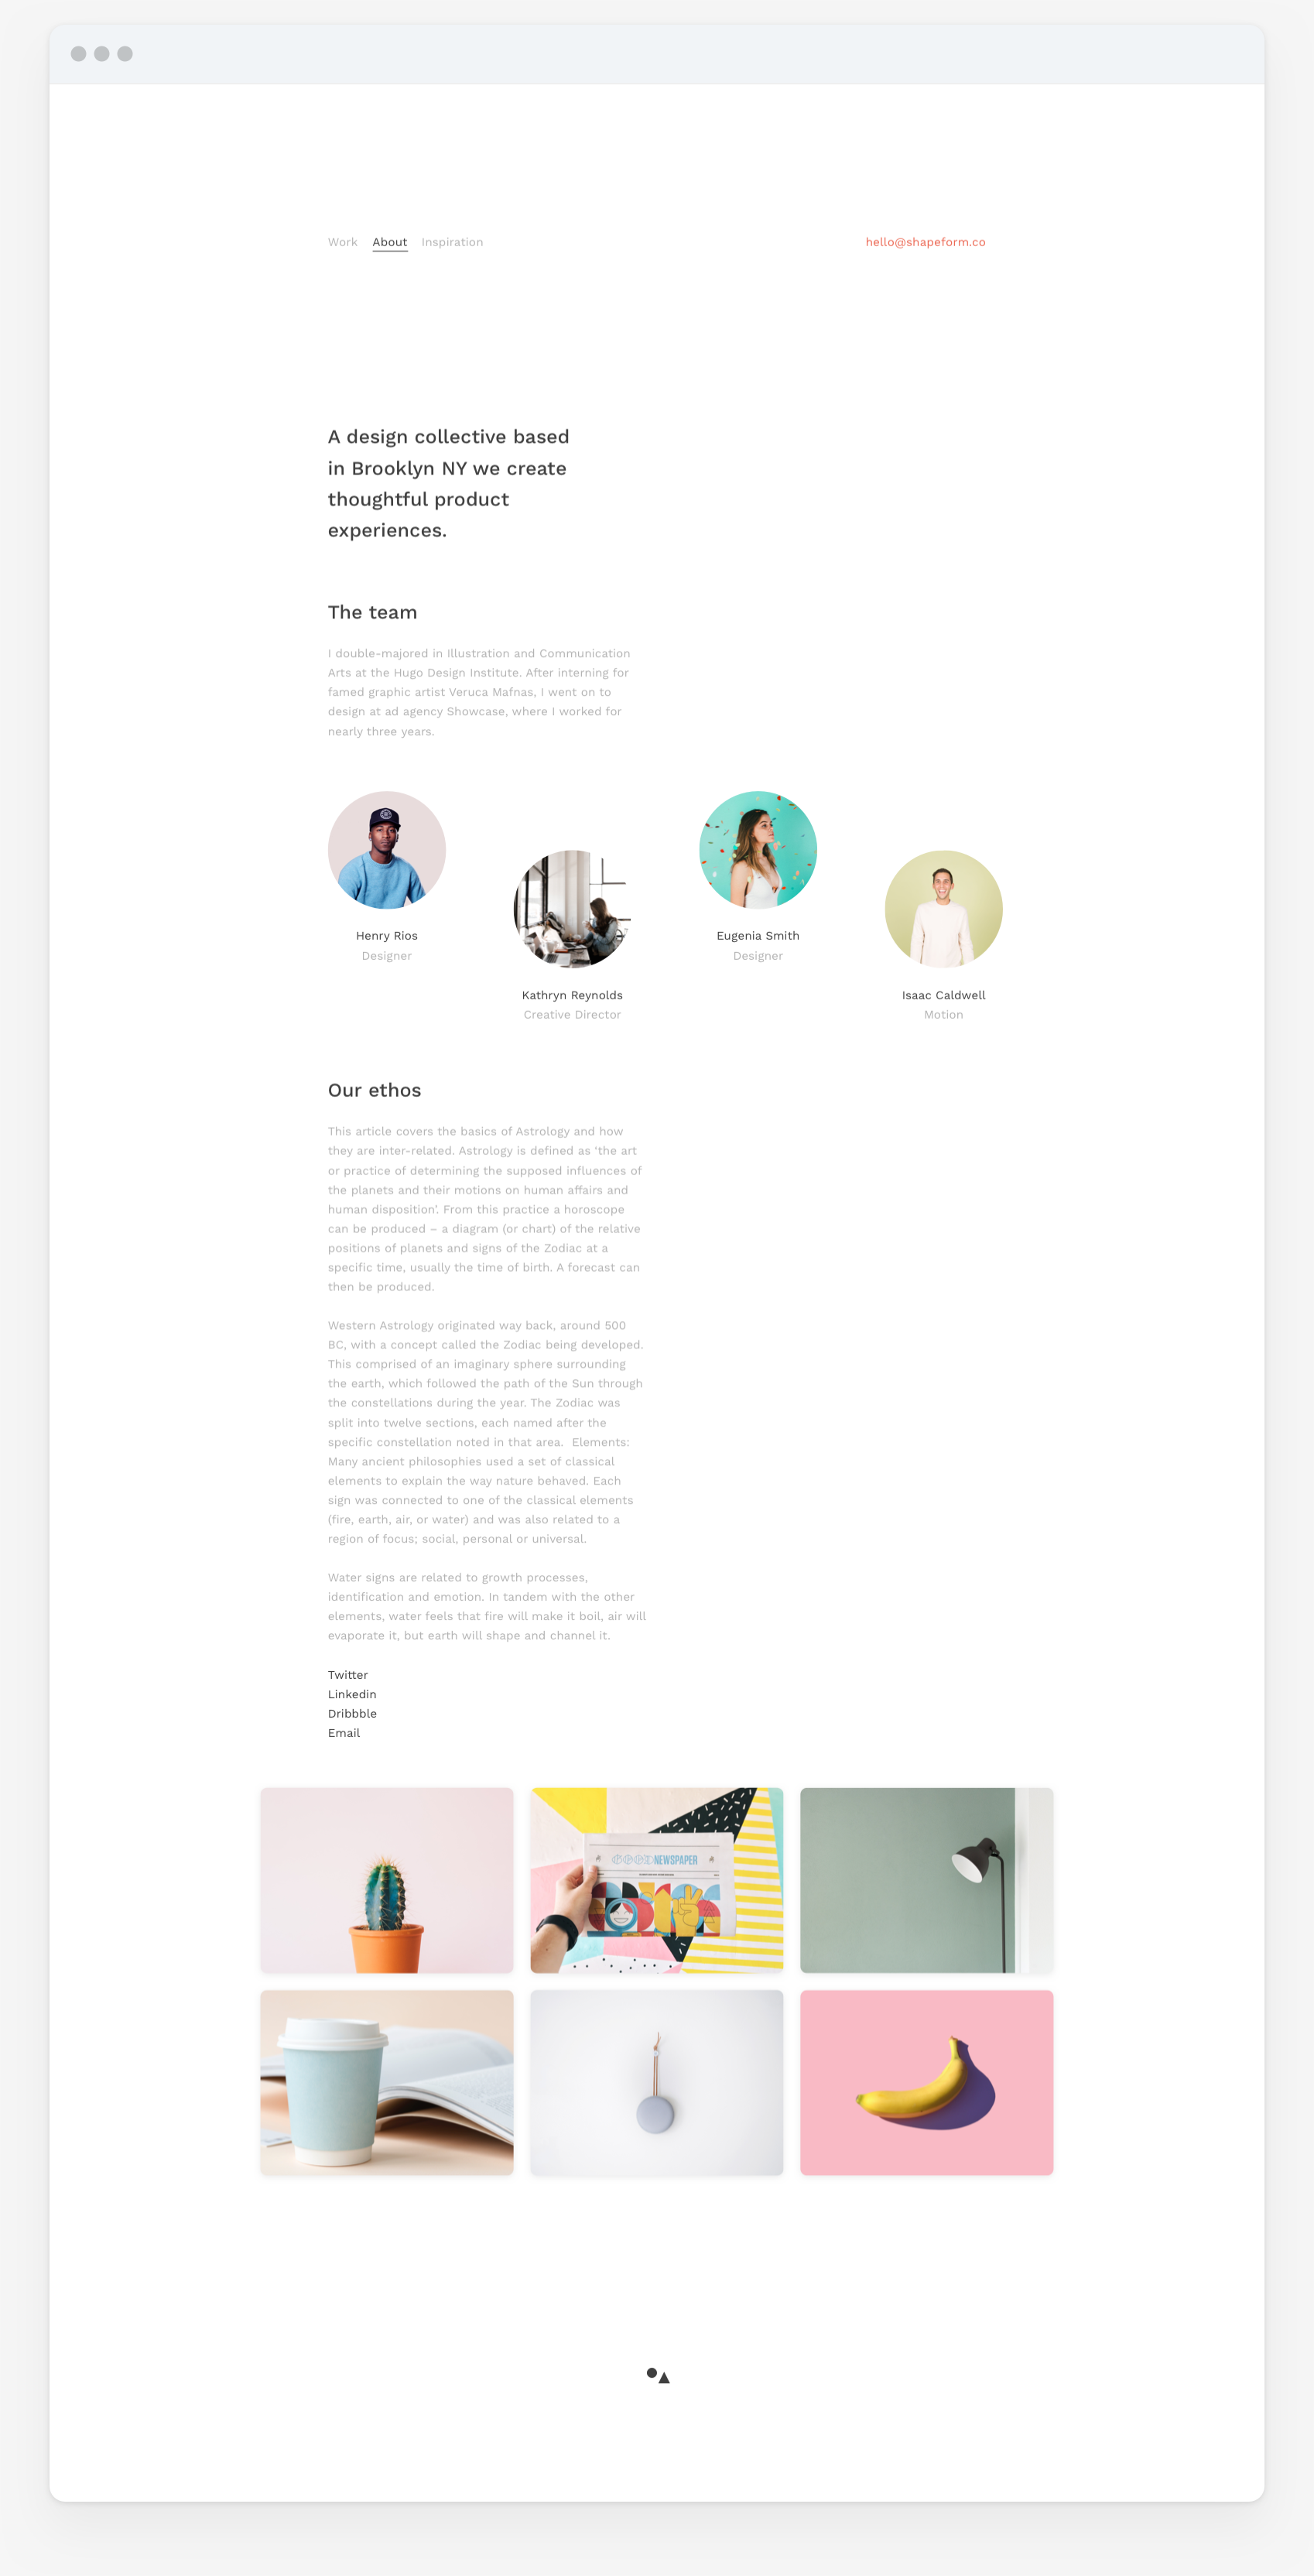 Shapeform Theme. website design of theme for designers, photographers and content creators. Team or studio about page.